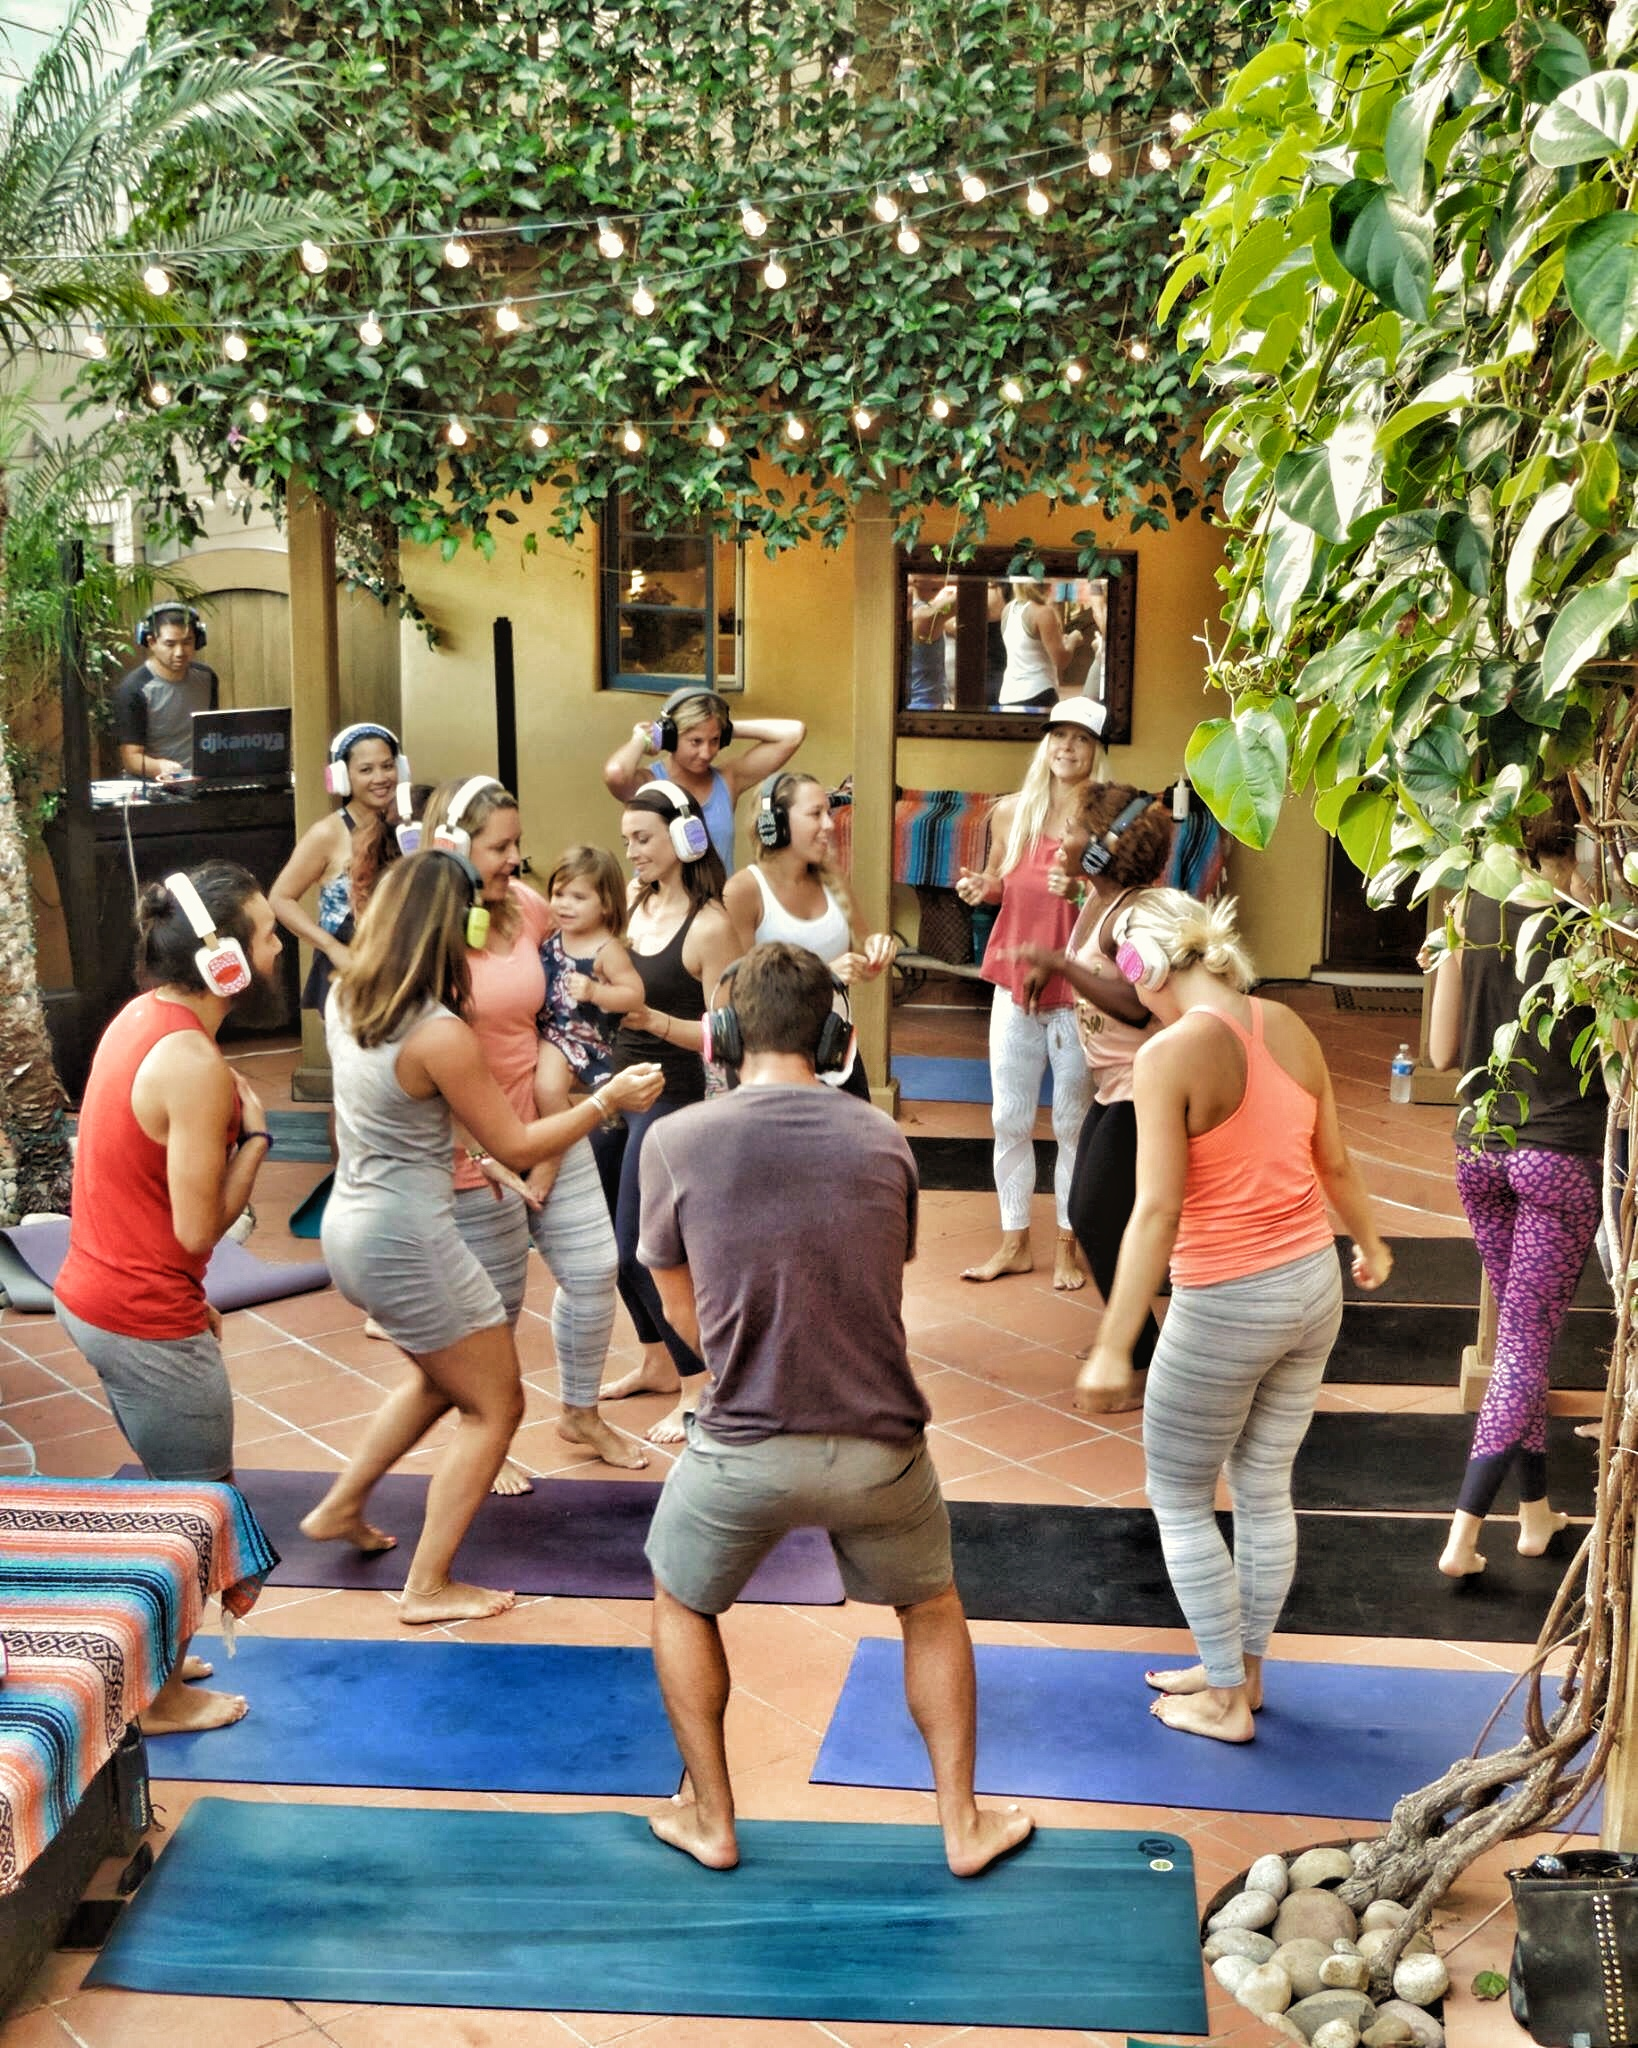 From a yoga flow to a dance party. Attendees at the Lululemon Residency event in San Diego experience the silent disco phenomenon. San Diego yoga and fitness DJ, Justin Kanoya, spun tunes for the event.